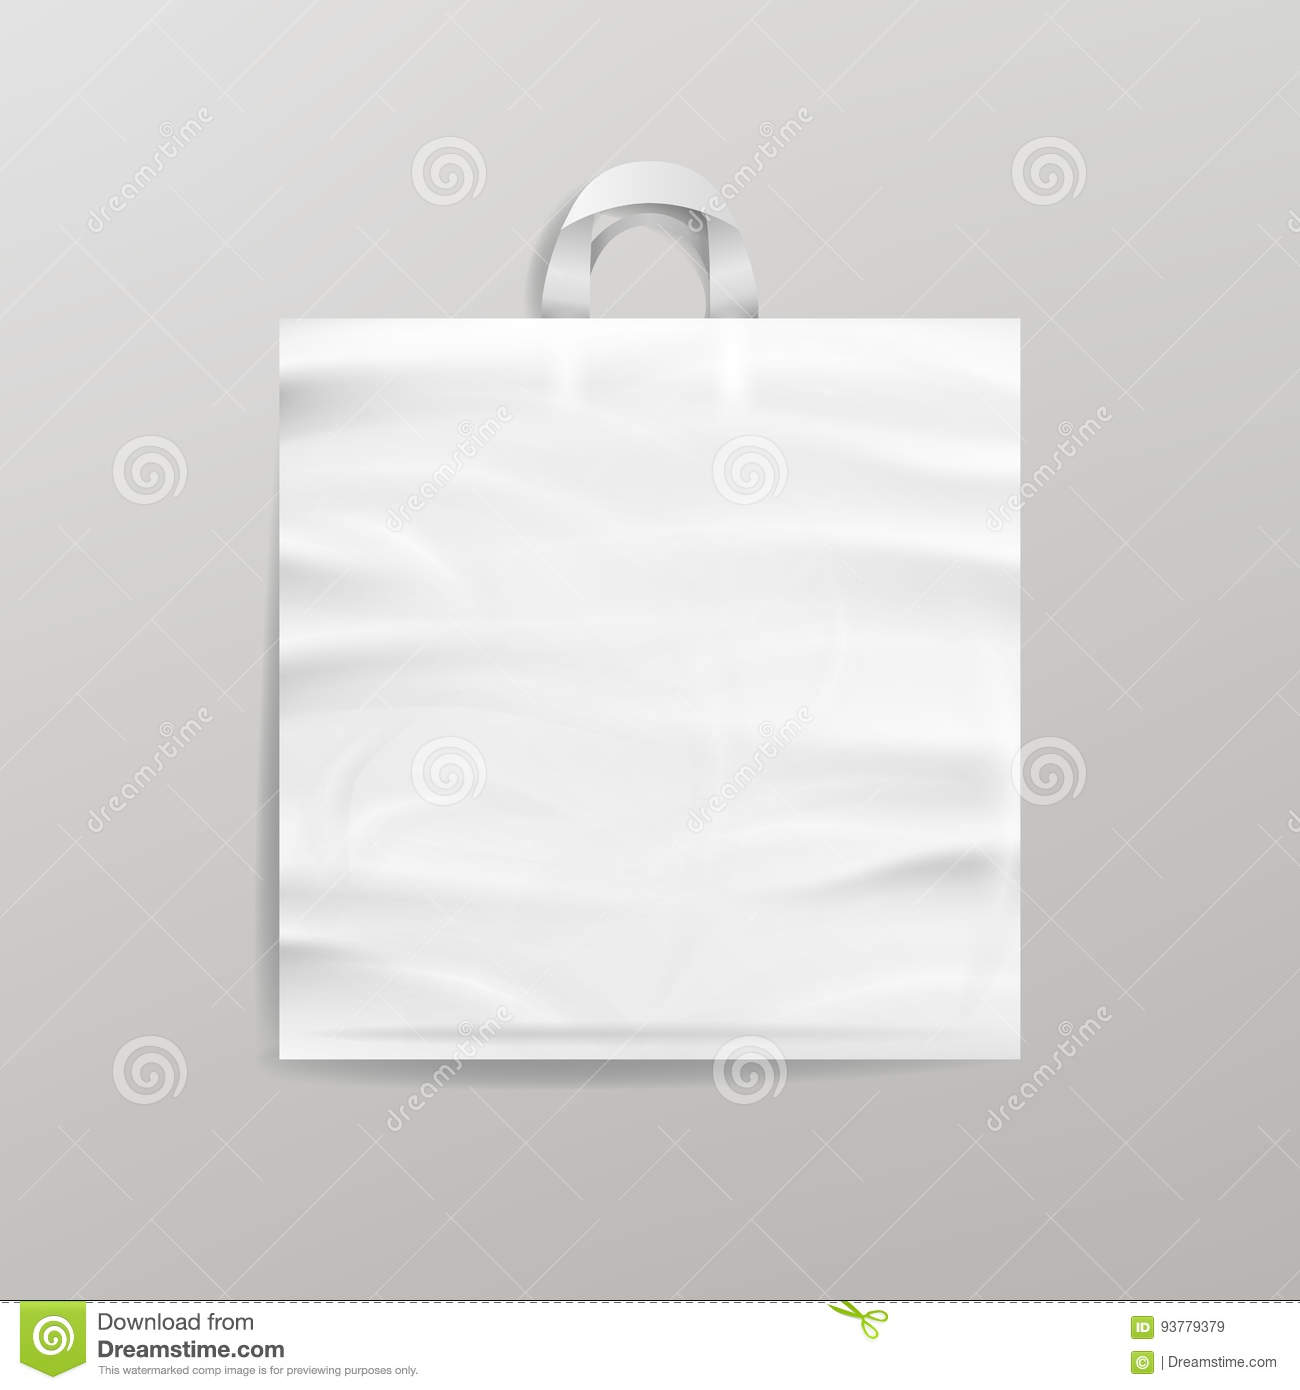 White Empty Reusable Plastic Shopping Bag With Handles. Close Up Mock Up. Vector Illustration